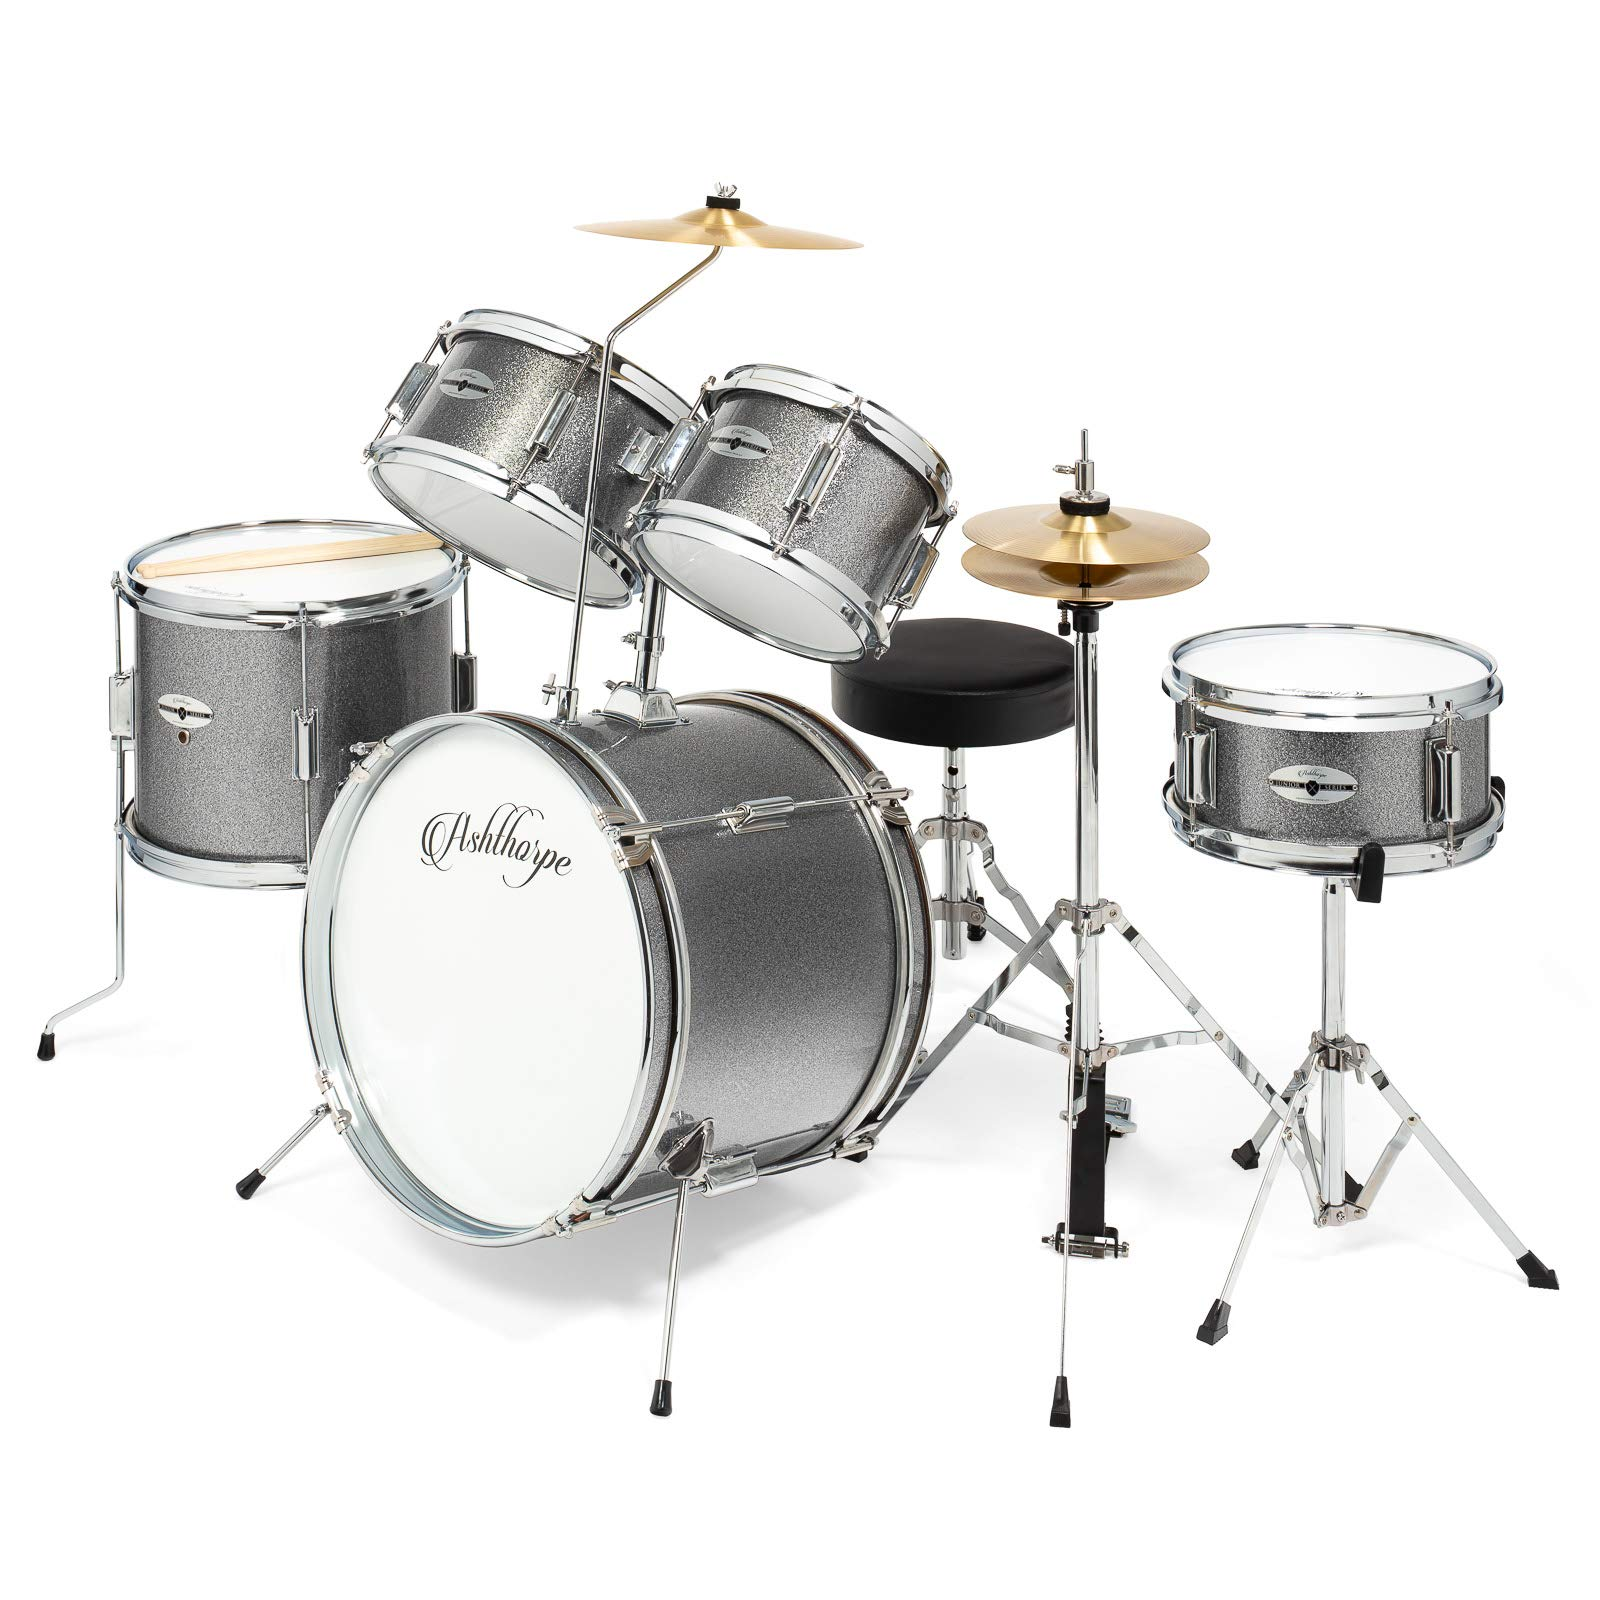 Ashthorpe 5-Piece Complete Kid's Junior Drum Set with Genuine Brass Cymbals - Children's Advanced Beginner Kit with 16'' Bass, Adjustable Throne, Cymbals, Hi-Hats, Pedals & Drumsticks - Silver